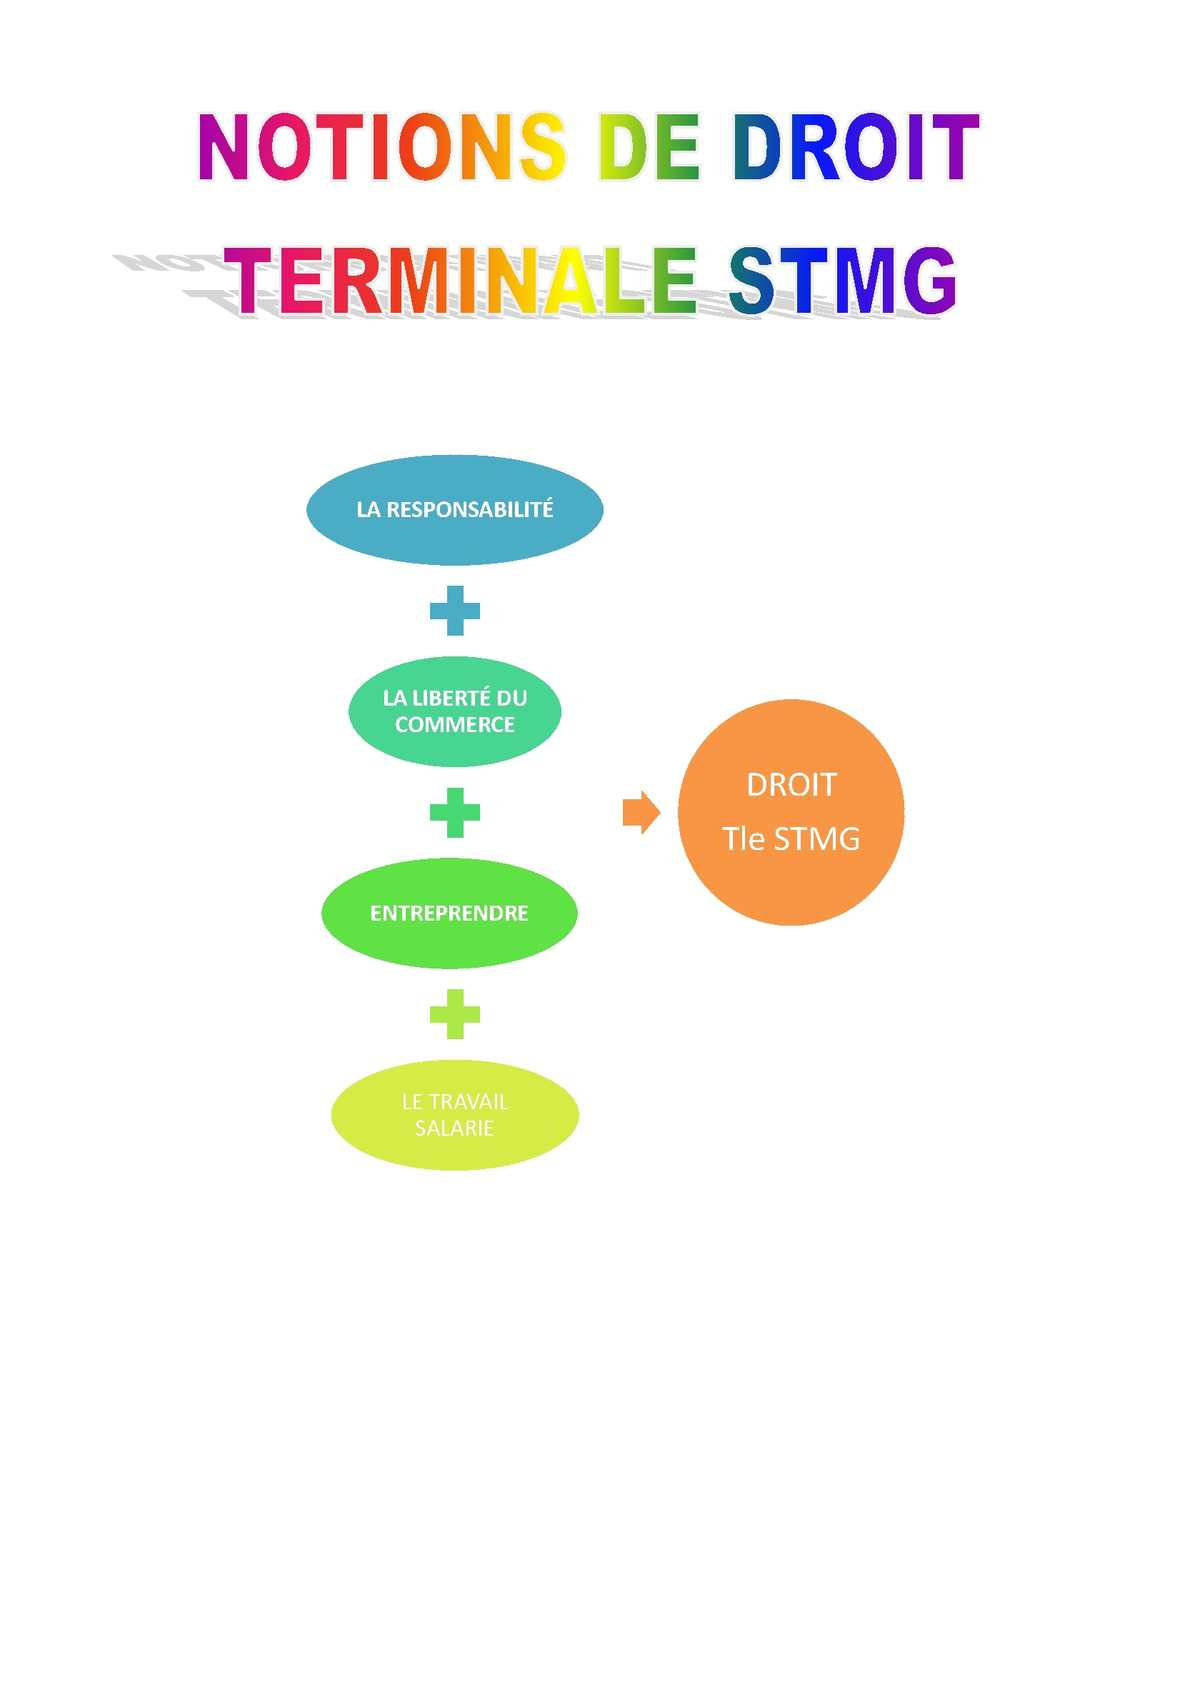 Calameo Synthese Droit Terminale Stmg